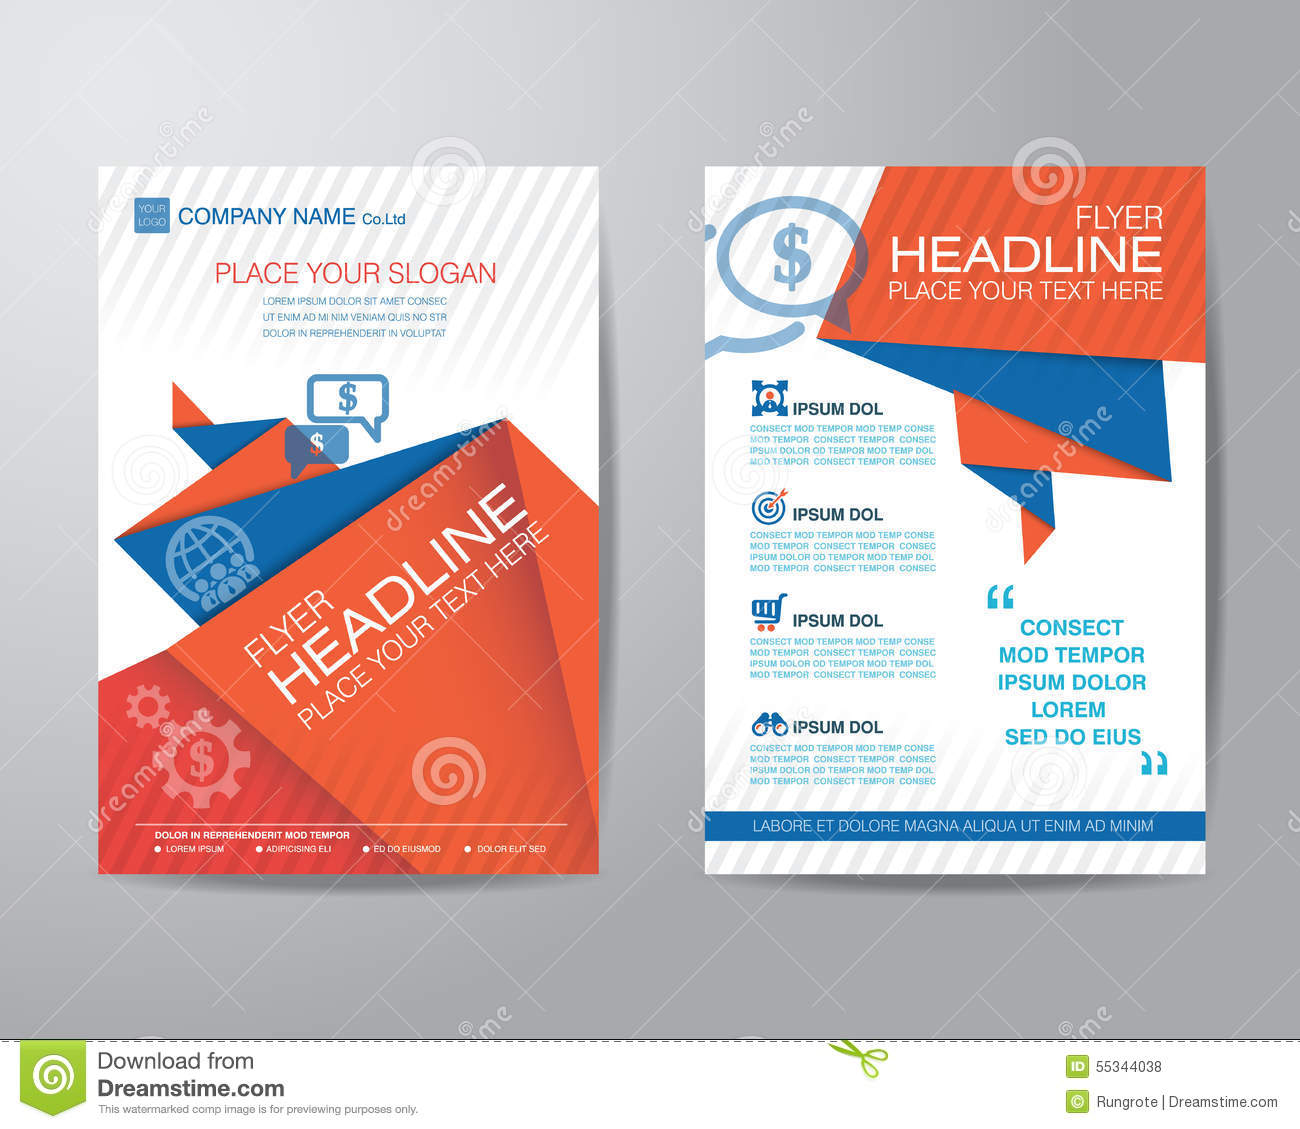 template for a flyer paralegal resume objective examples tig abstract triangle flyer design template stock photos images abstract triangle brochure flyer design layout template si